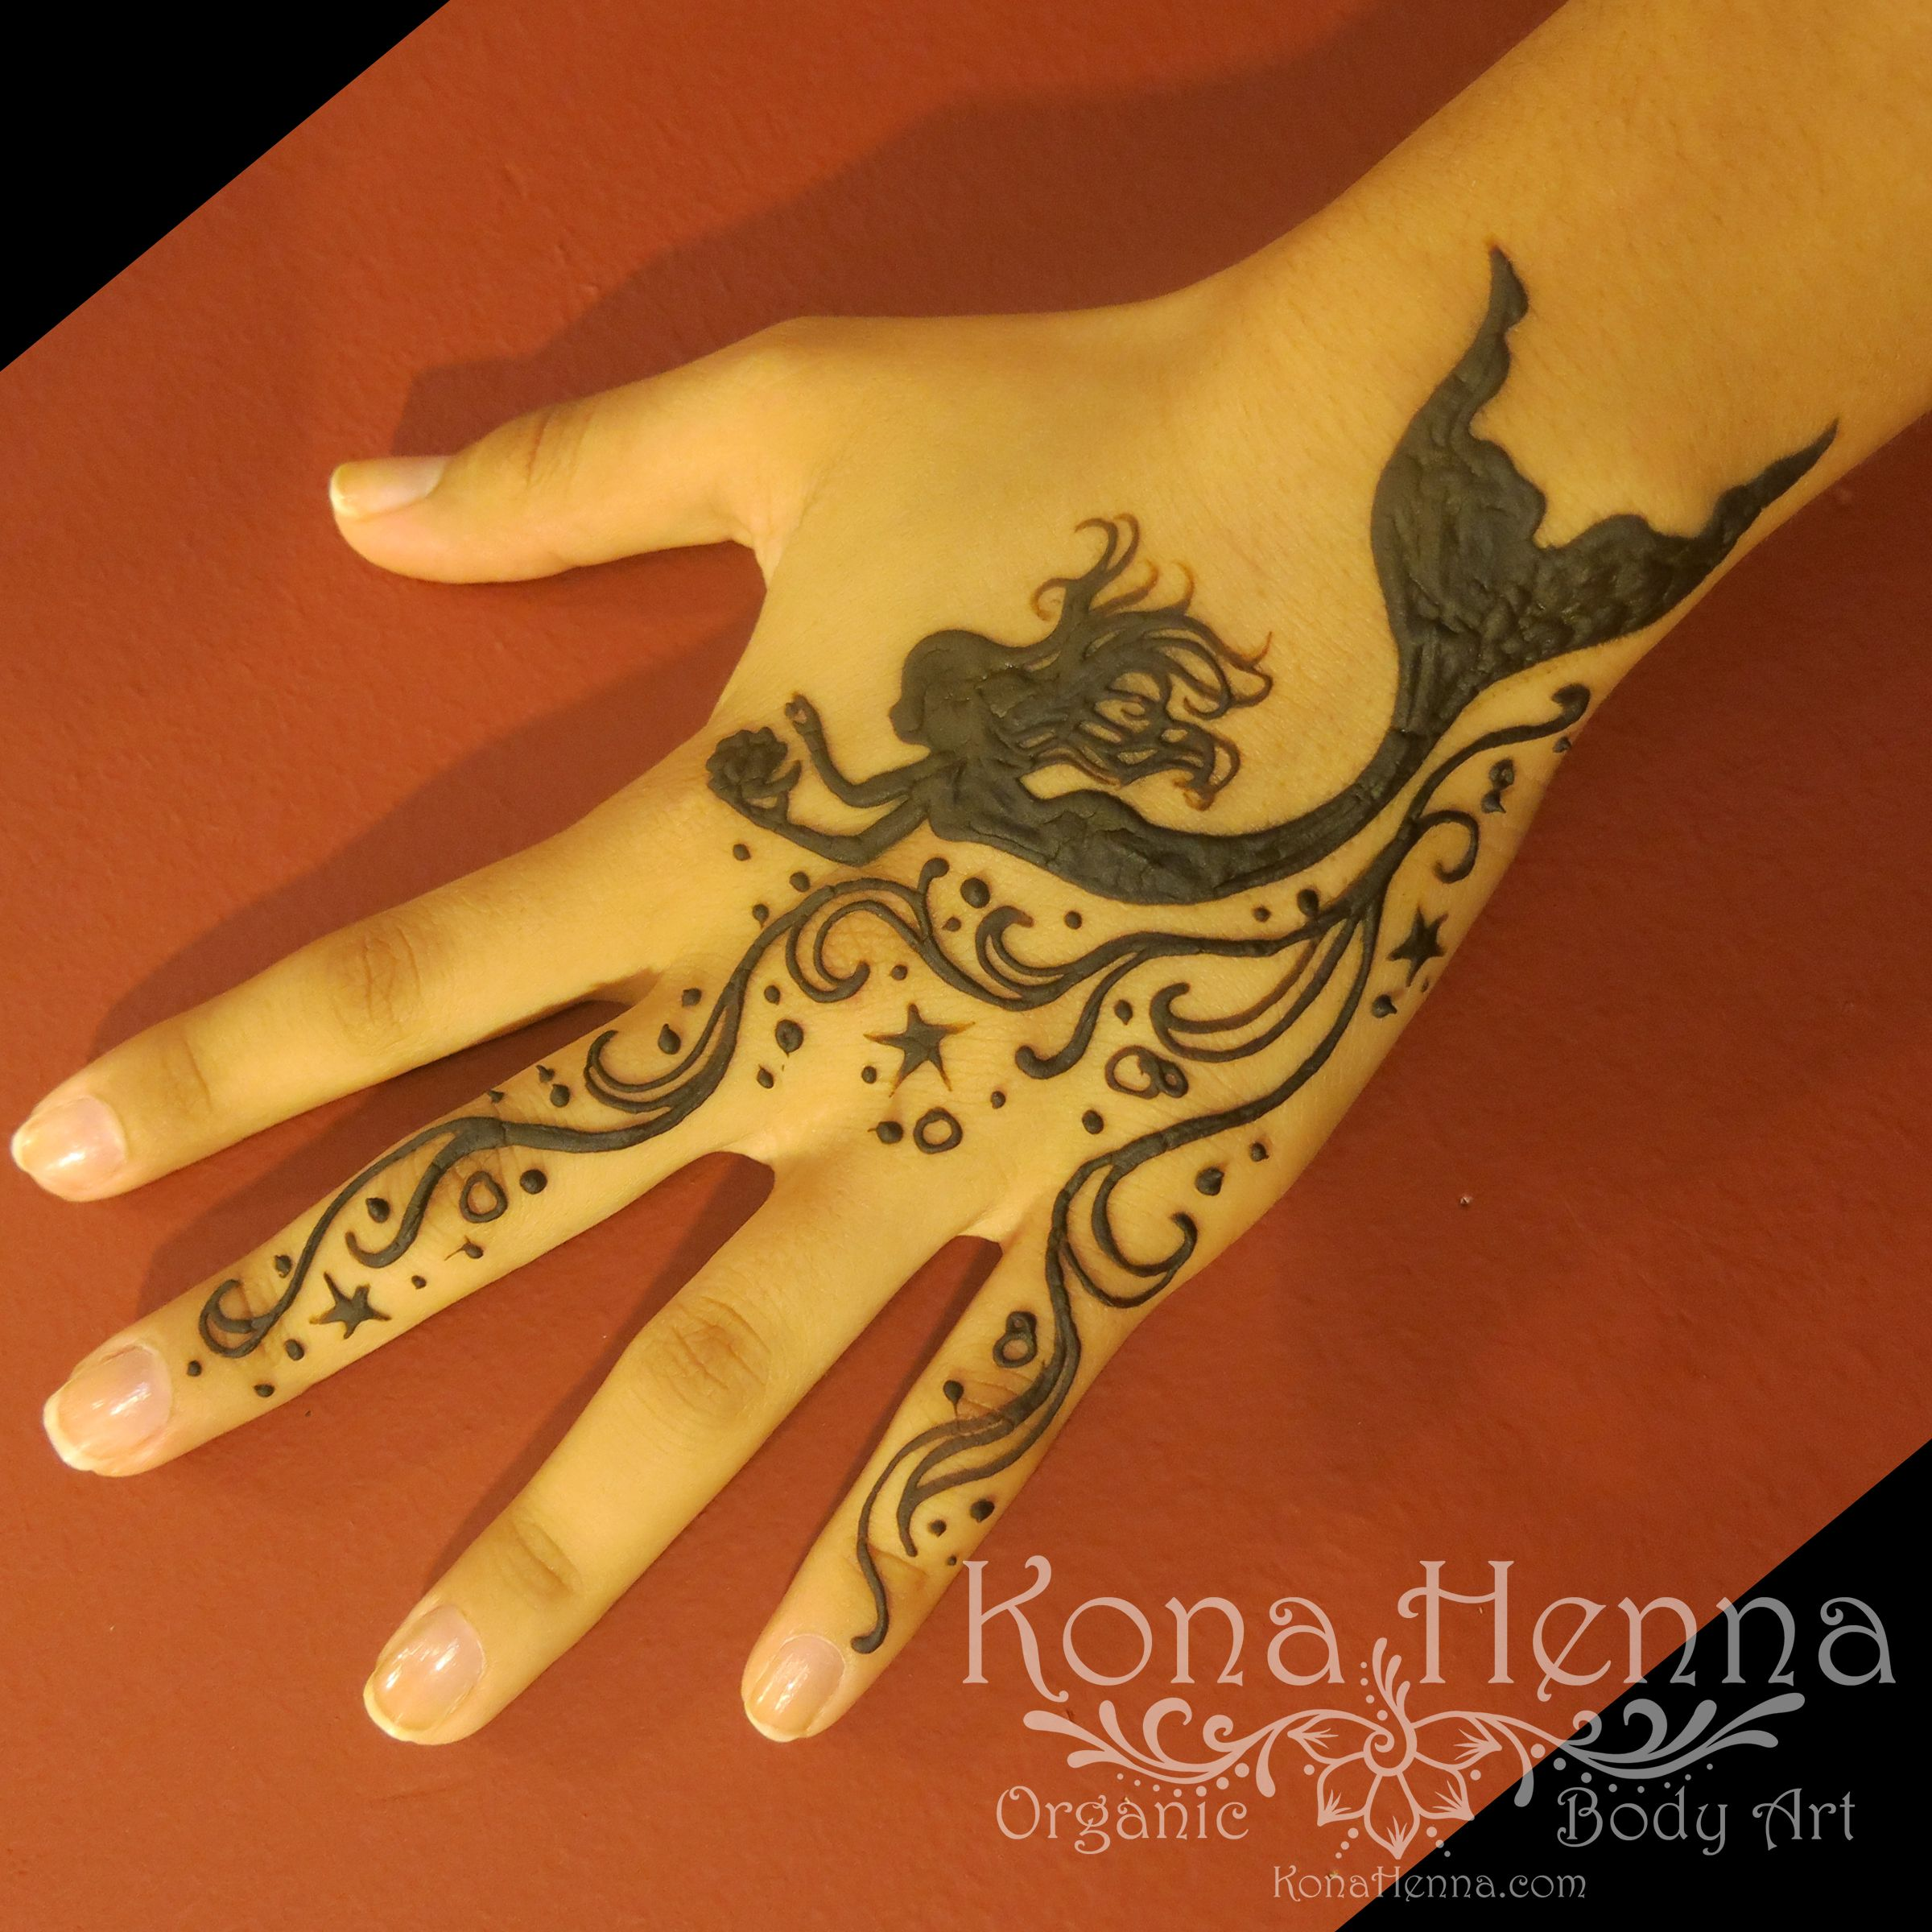 Professional Henna Tattoo Artists For Hire In Austin: Organic Henna Products. Professional Henna Studio